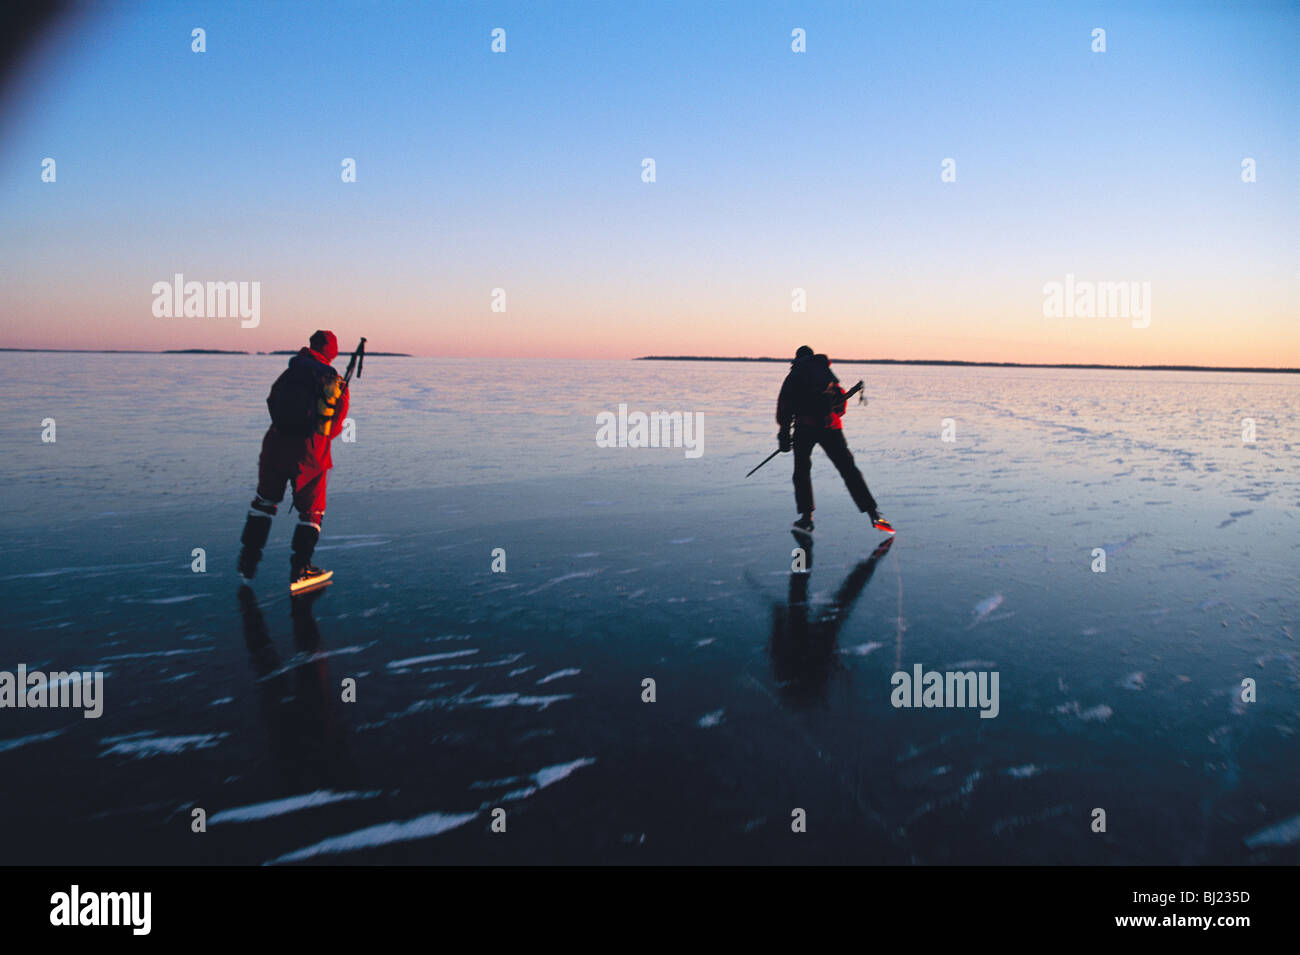 Two people skating on a lake at sunset, Sweden. - Stock Image